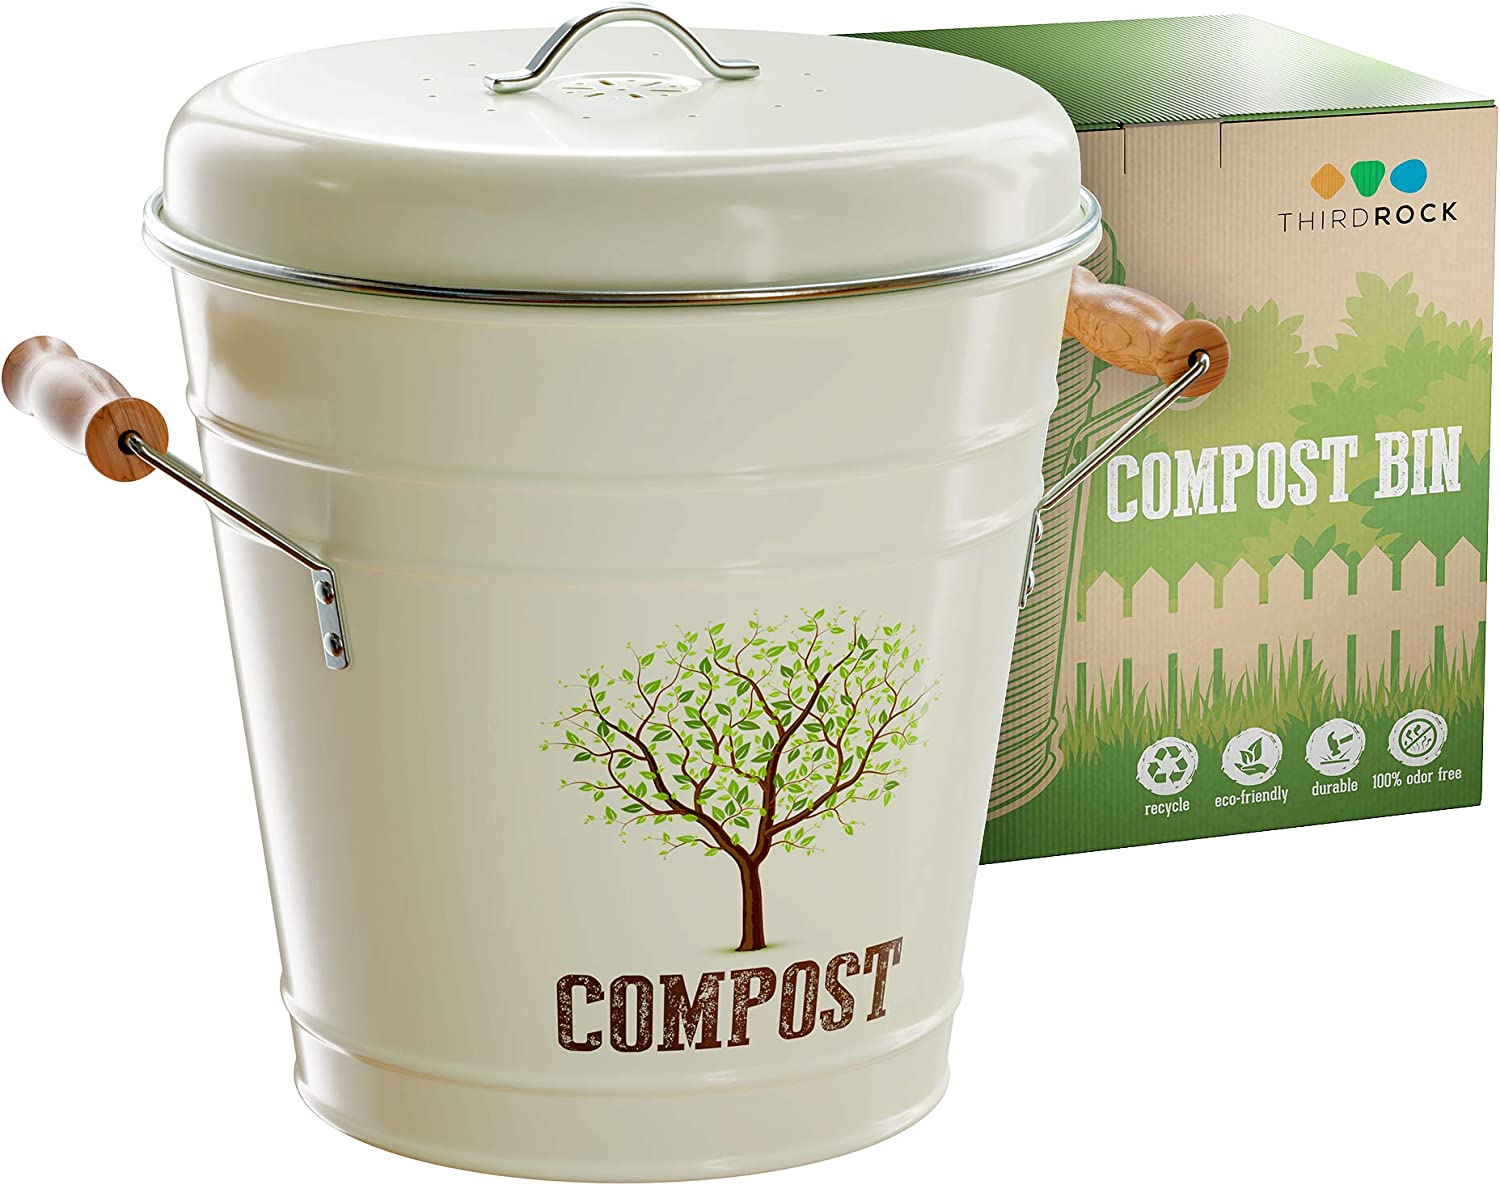 Third Rock Compost Bin for Kitchen Counter - 1.3 Gallon 5 Liter | Premium Dual Layer Powder Coated Carbon Steel Compost Bin Countertop Bucket | Includes Charcoal Filter & Removeable Inner Pail Liner